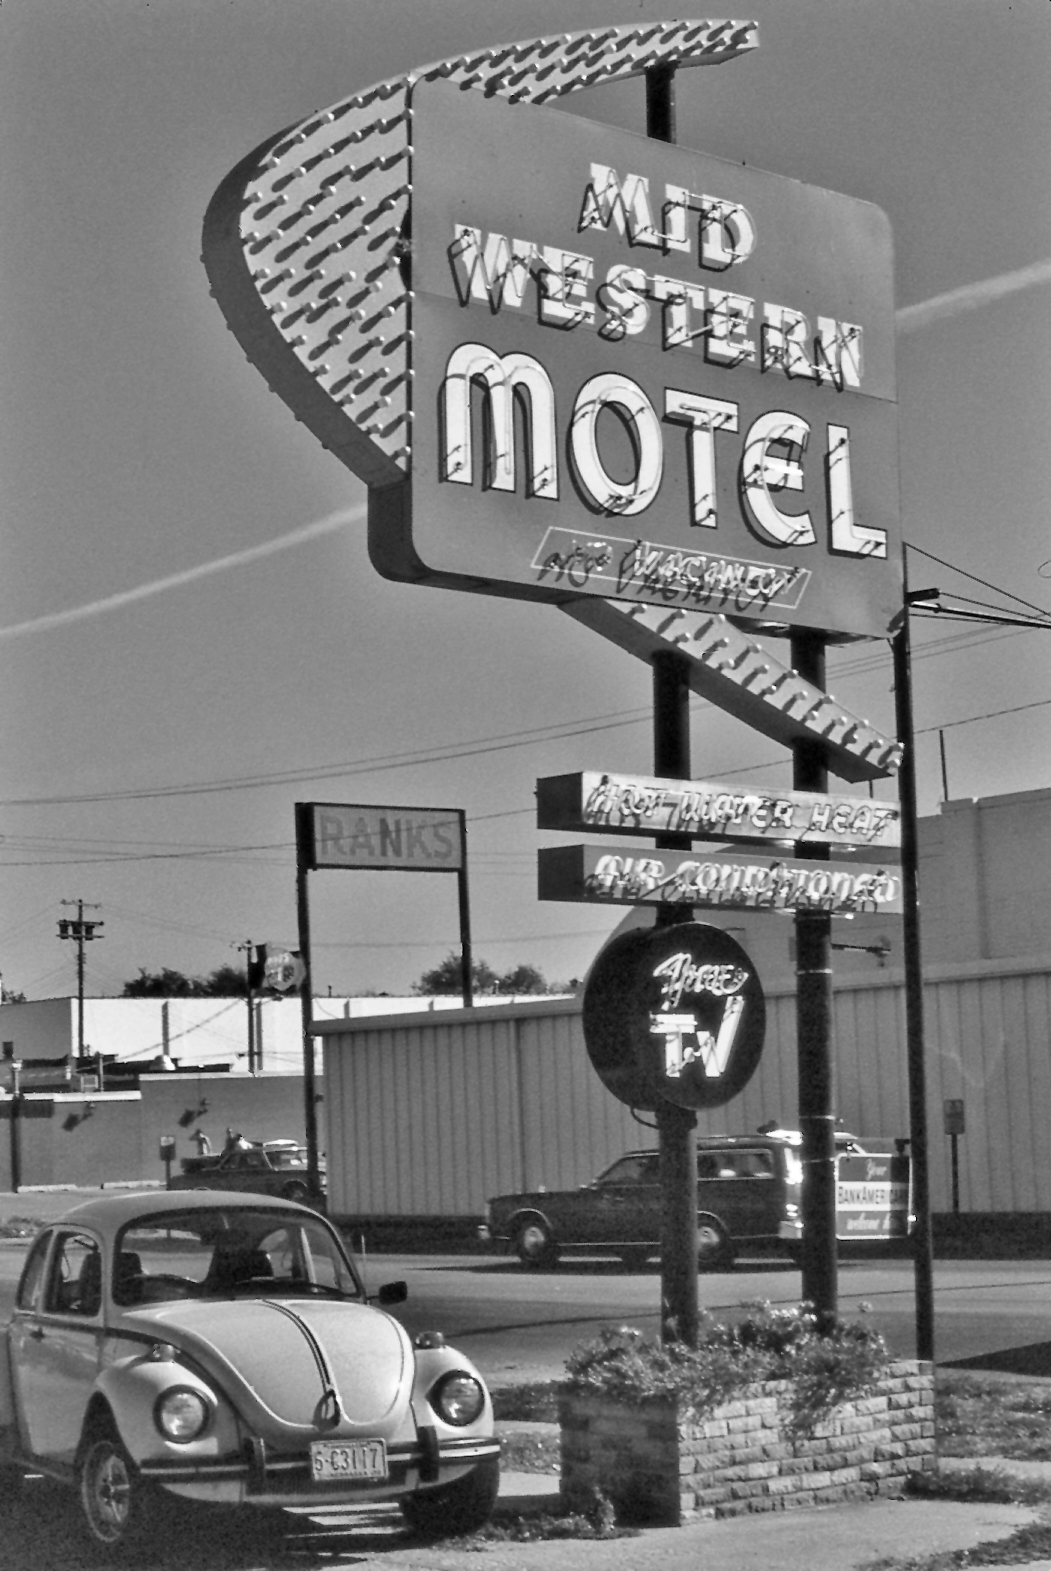 Midwestern Motel, photograph, 1 - jannelson | ello